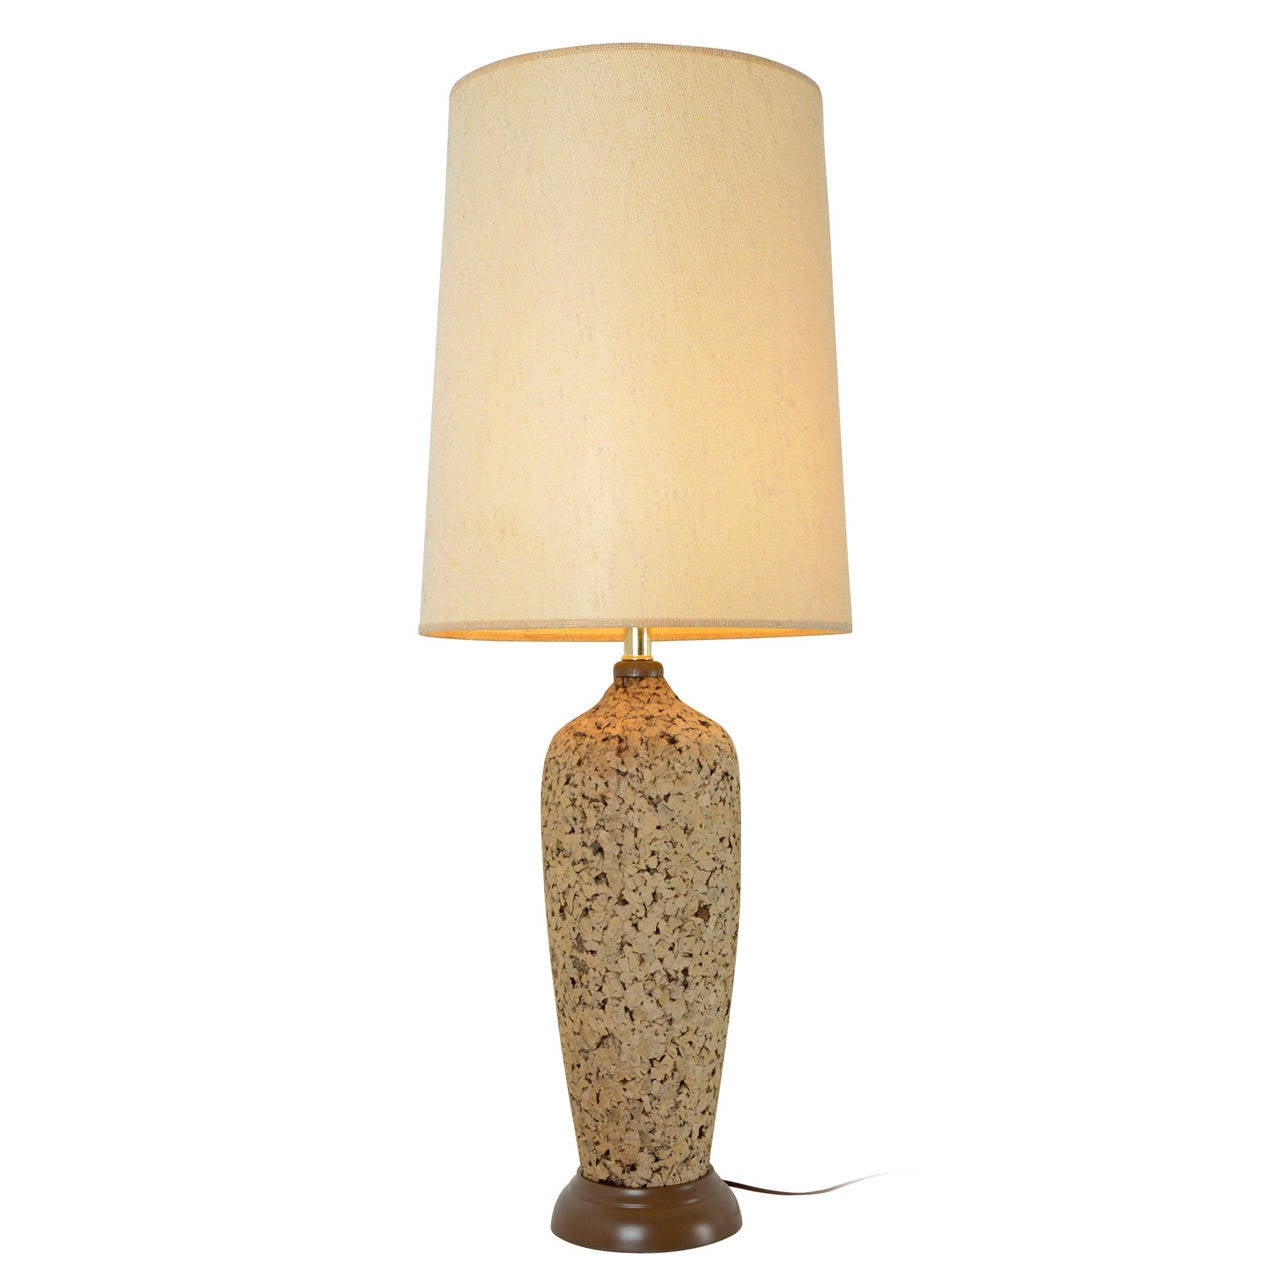 Org r3901 for Wine cork lampshade